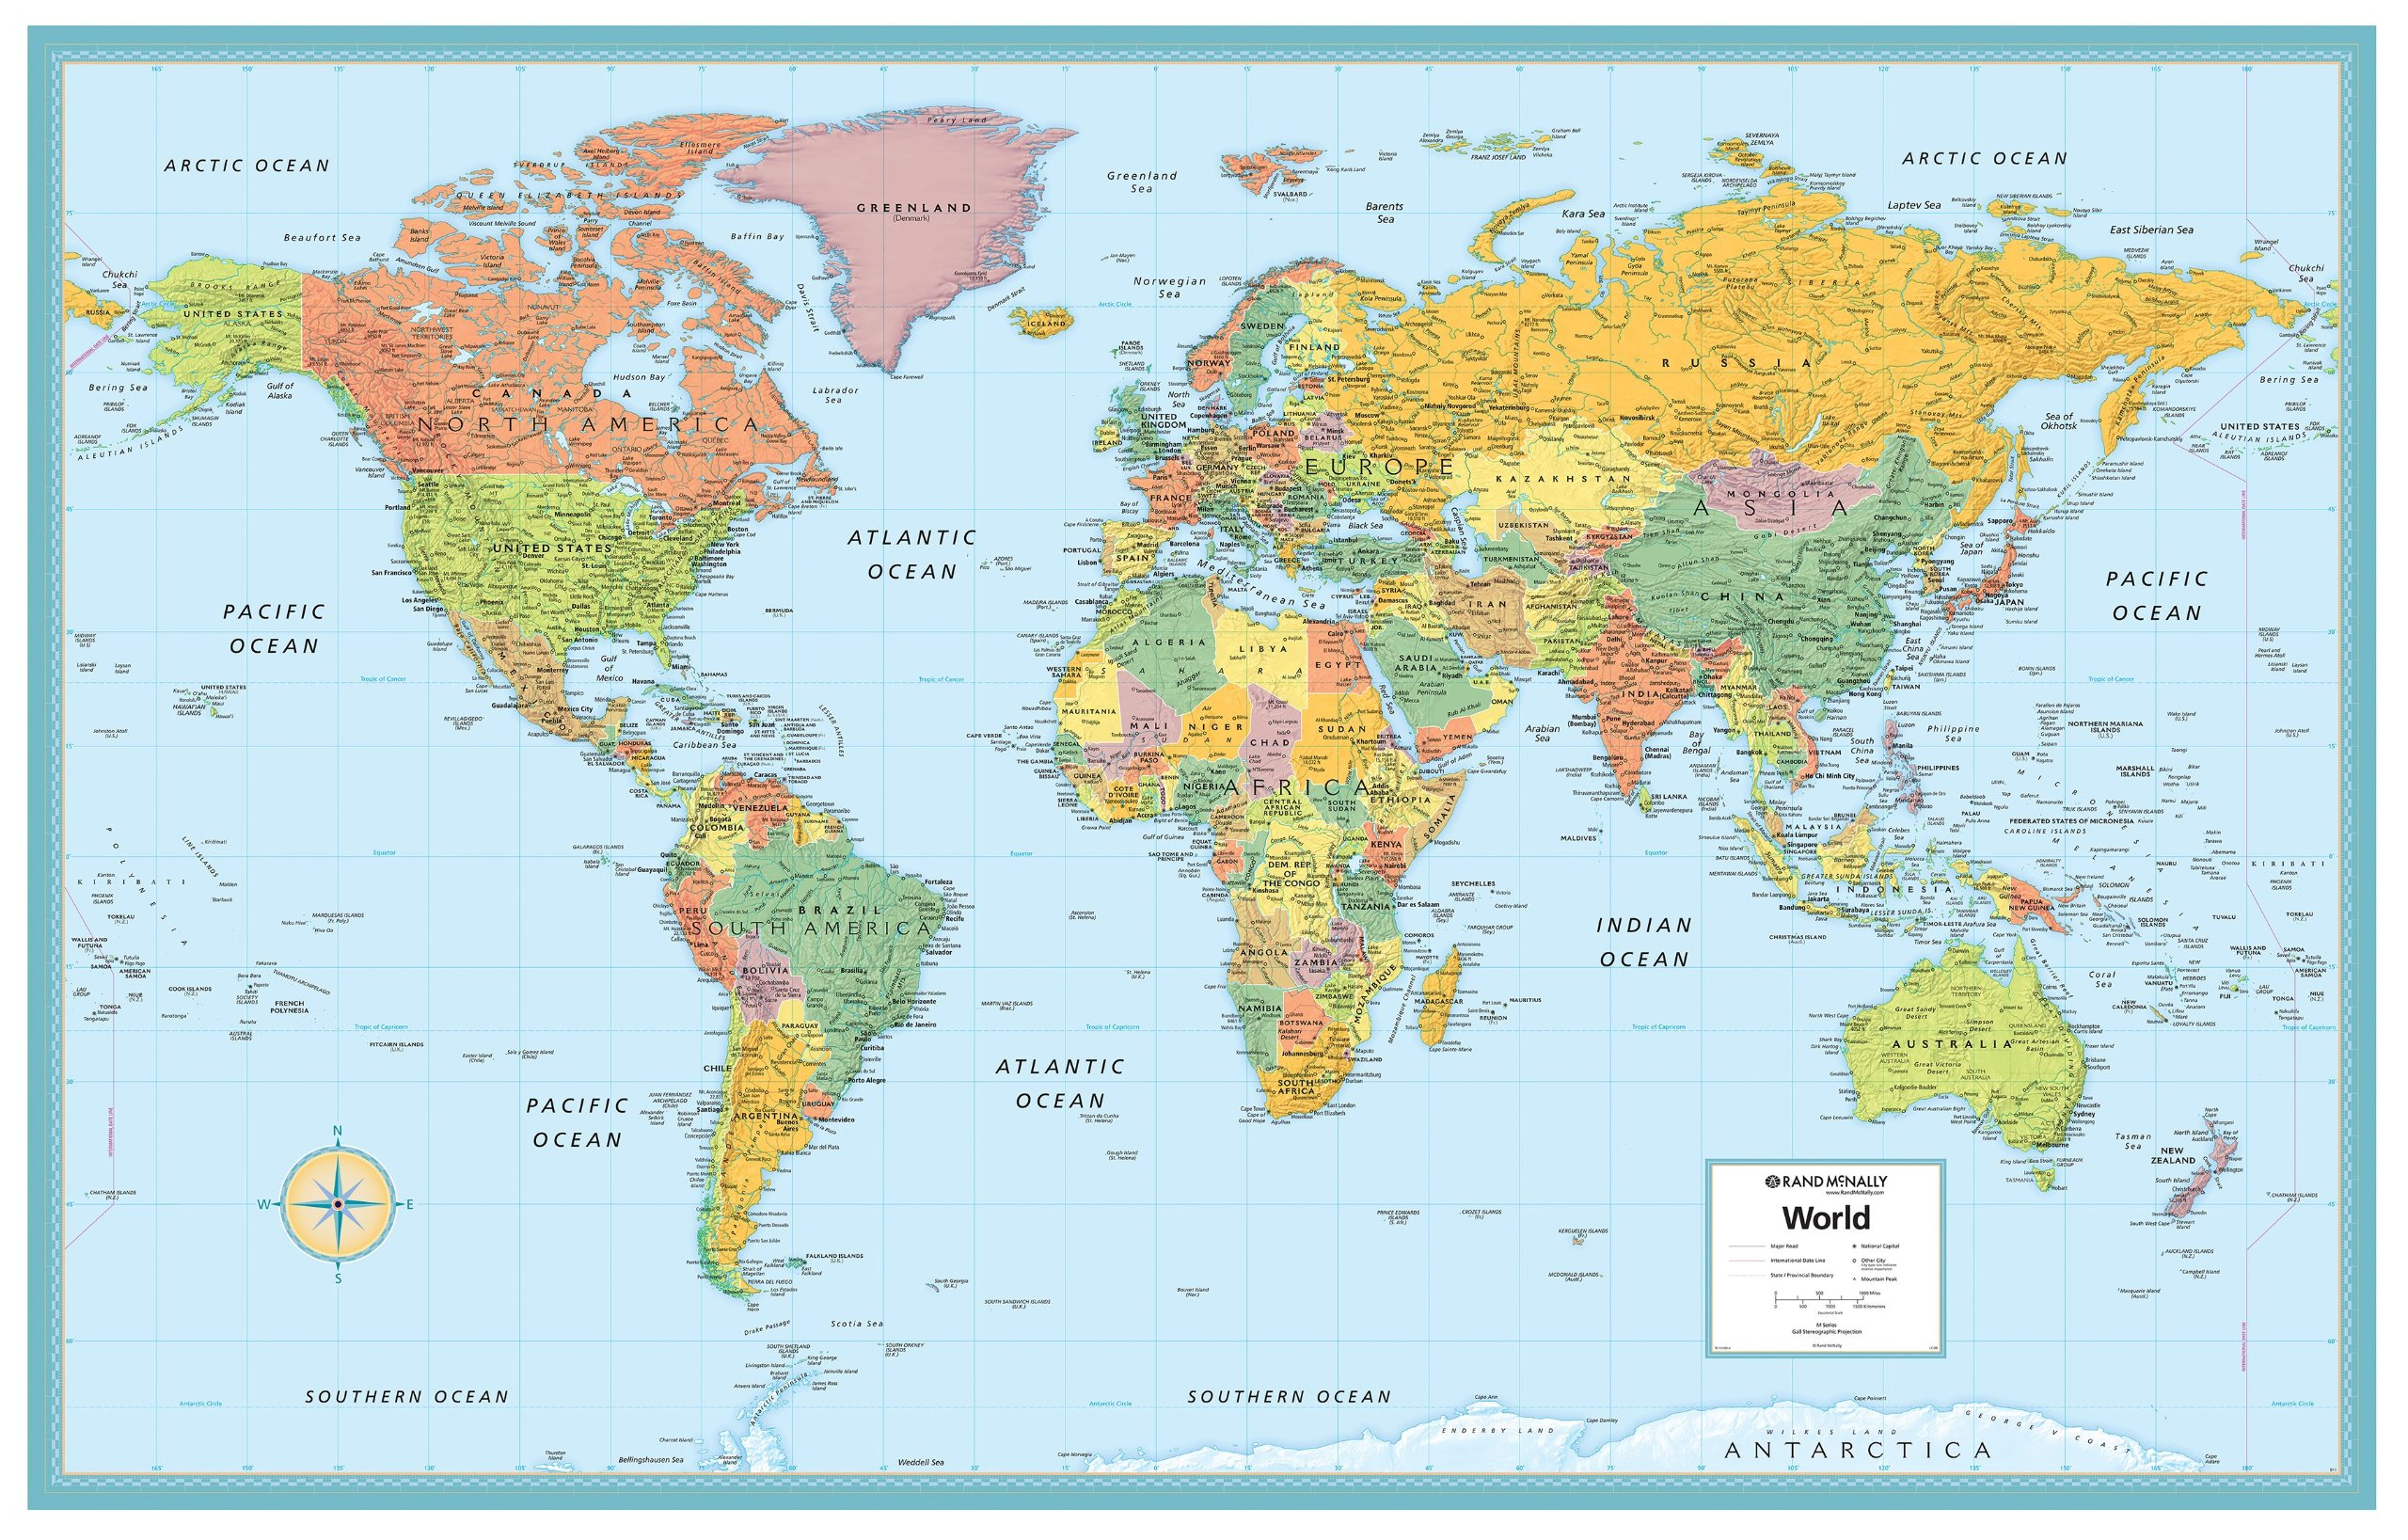 Rand mcnally world folded wall map m series map of the world rand rand mcnally world folded wall map m series map of the world rand mcnally 9780528002281 amazon books gumiabroncs Image collections